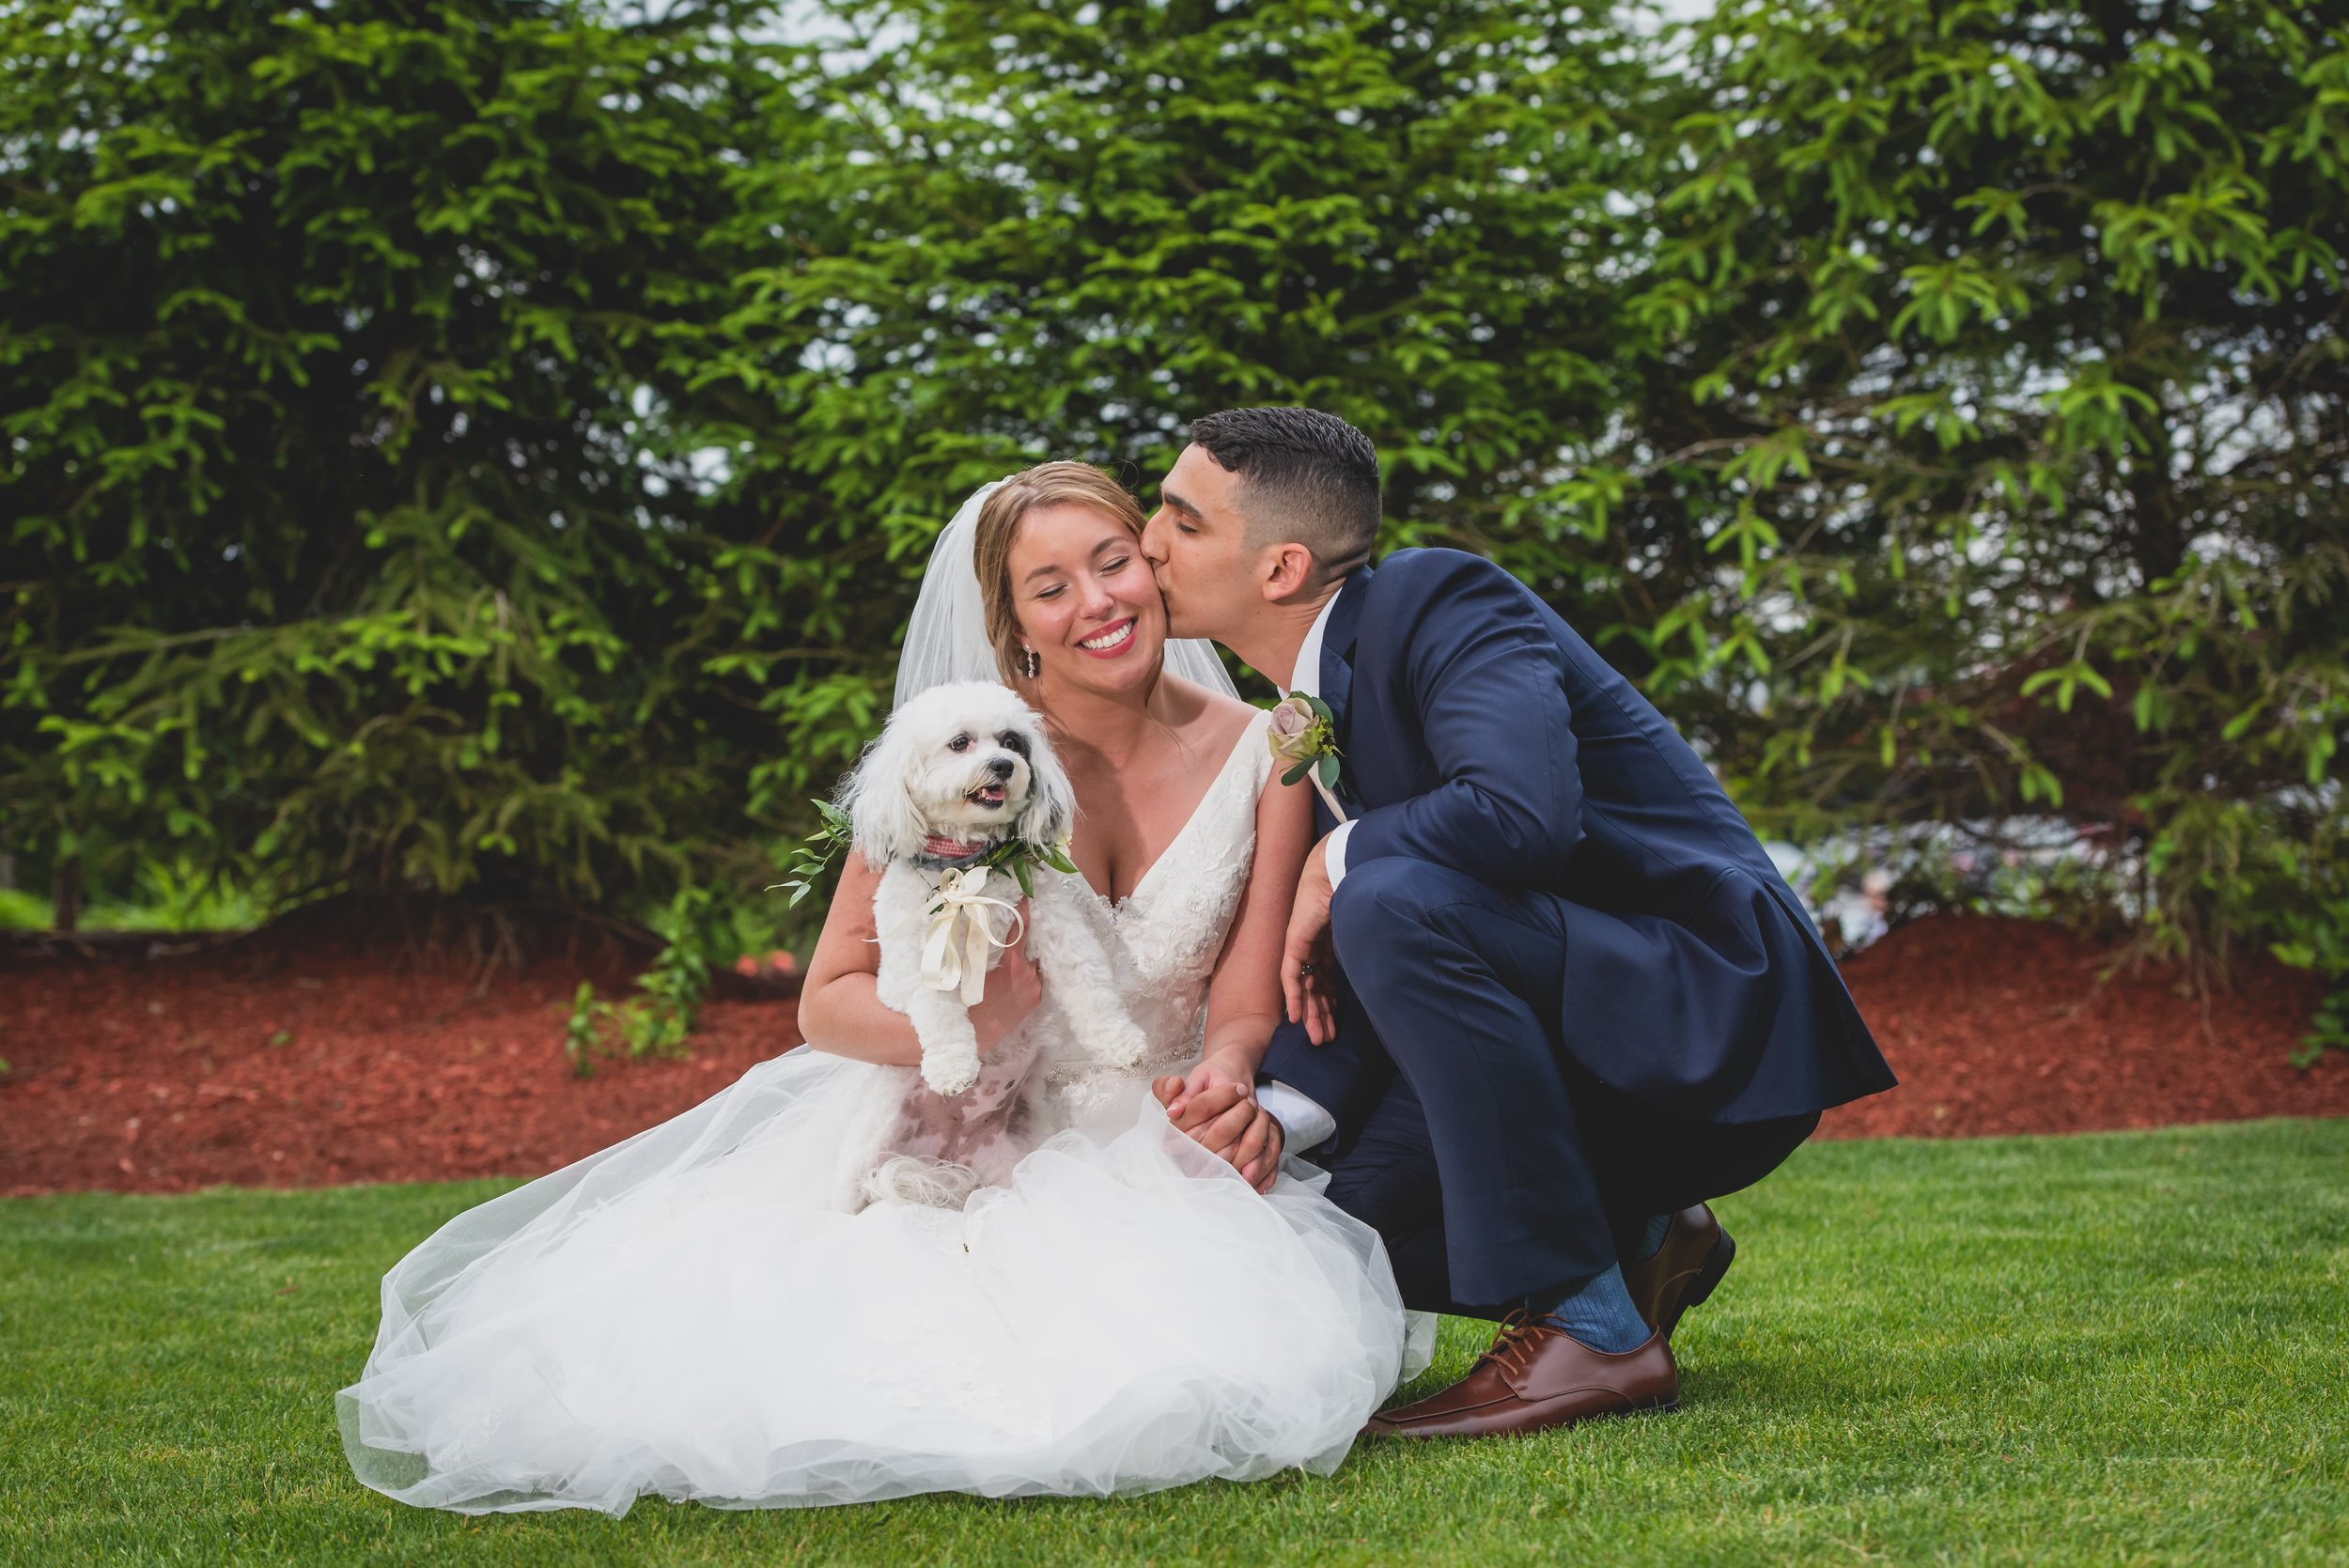 The groom kissing his bride on the cheek while kneels in the grass holding their black and white lap dog.